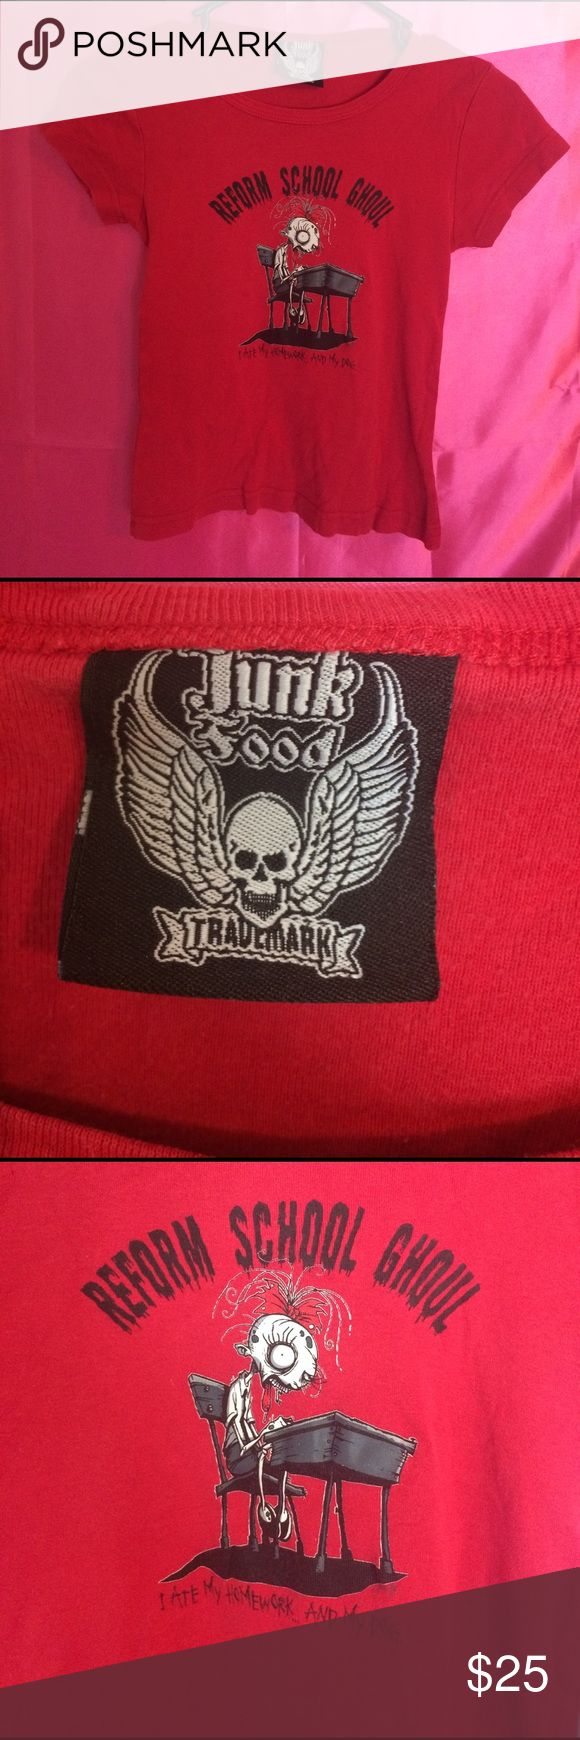 Super rare junk food shirt Super rare junk food trademark red T-shirt reform school ghoul size extra small Goth oldschool punk girl style Junk Food Tops Tees - Short Sleeve